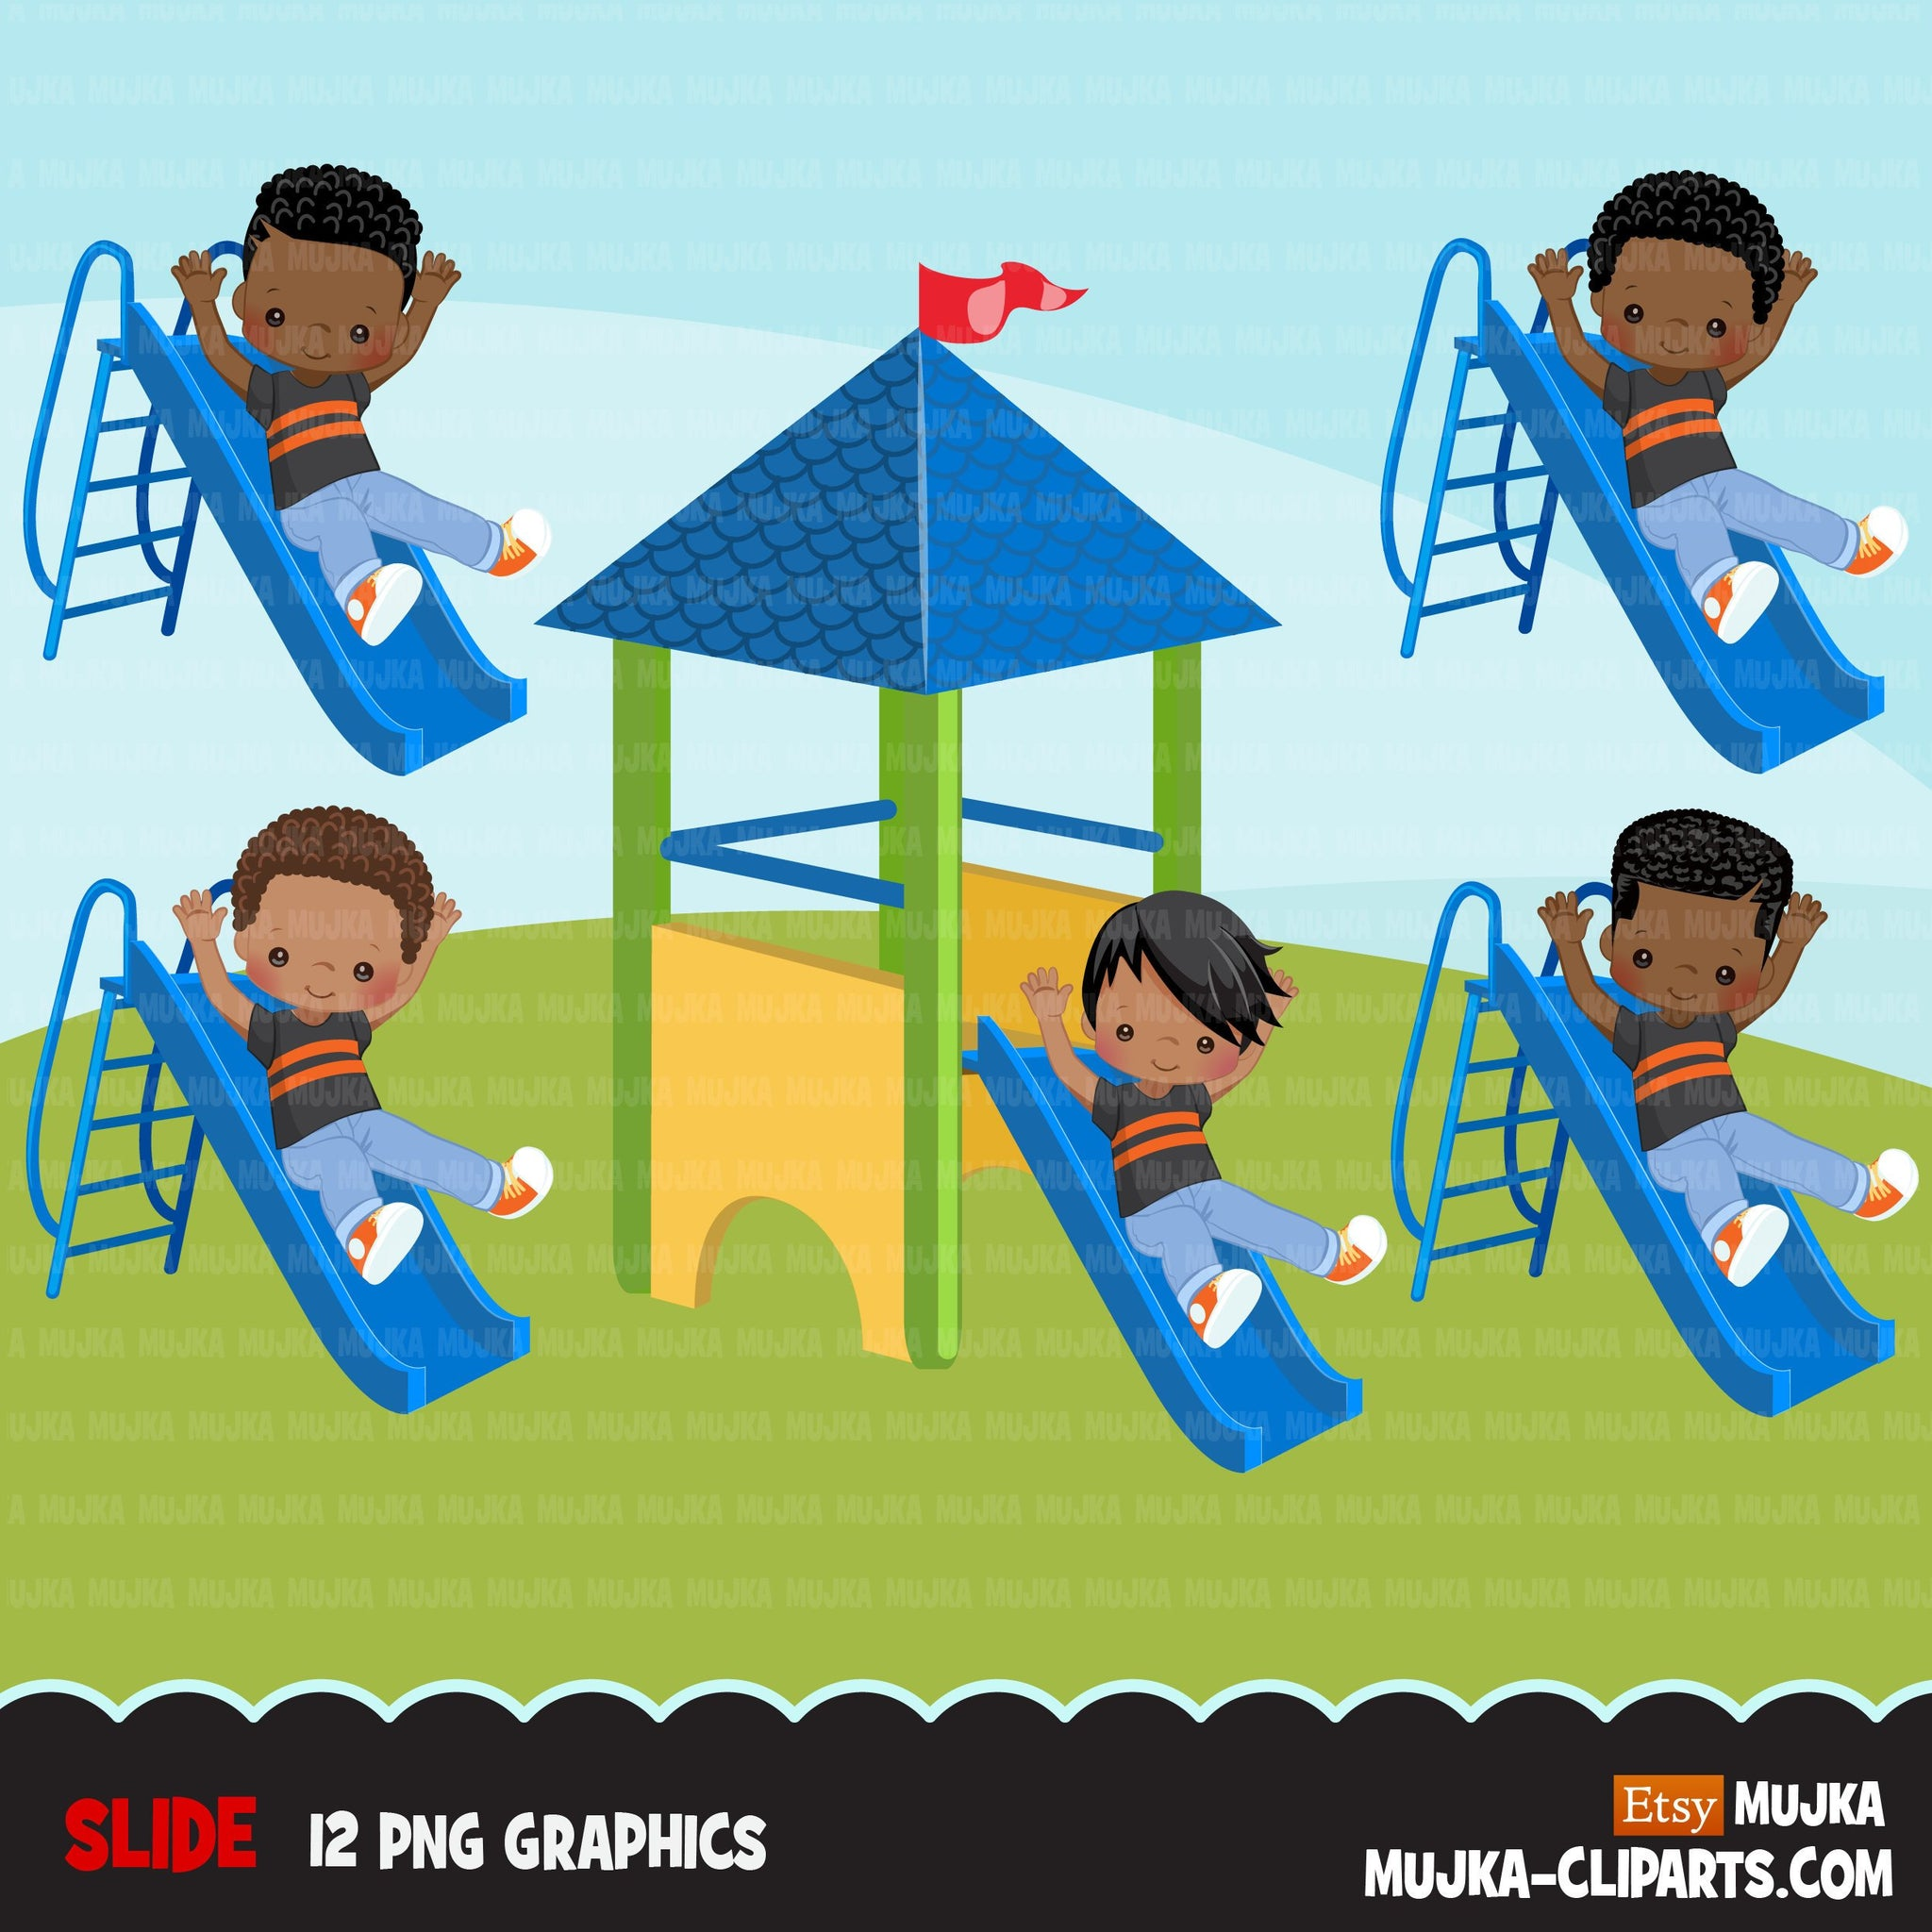 Playground Clipart, black boy on slide, outdoors park slide graphics, kindergarten, first grade, school commercial use Png clip art